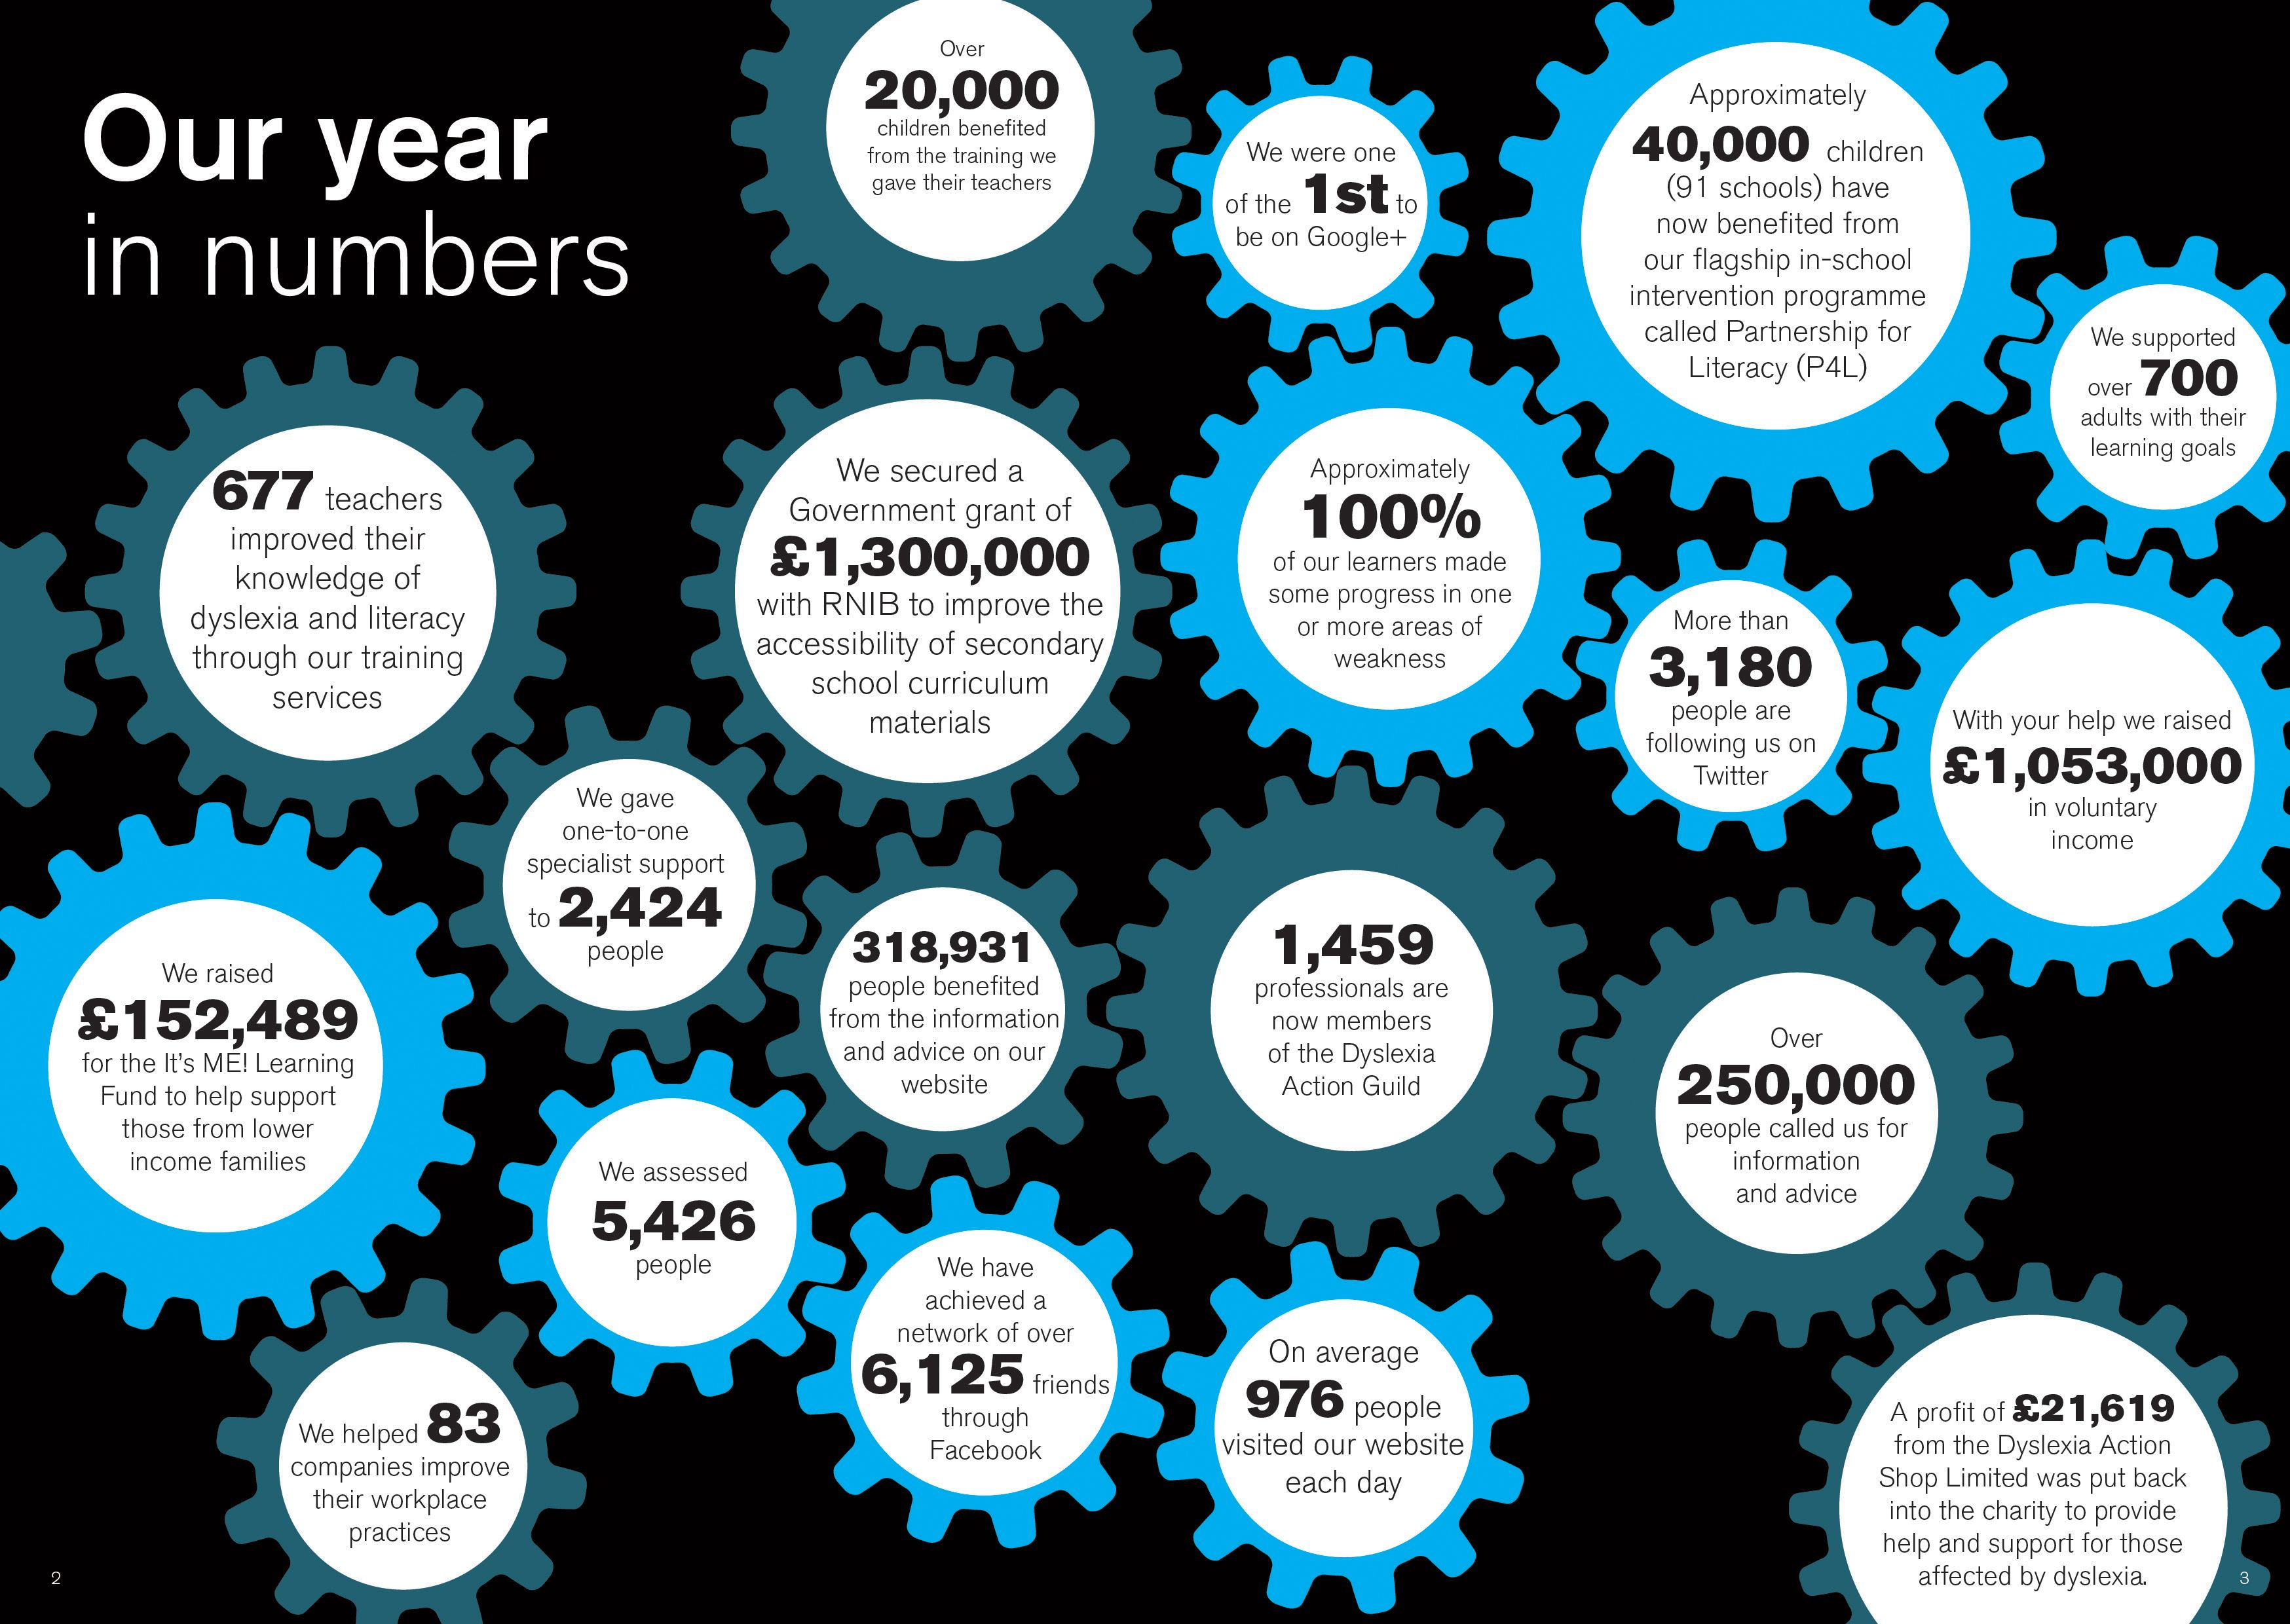 Our Year In Numbers